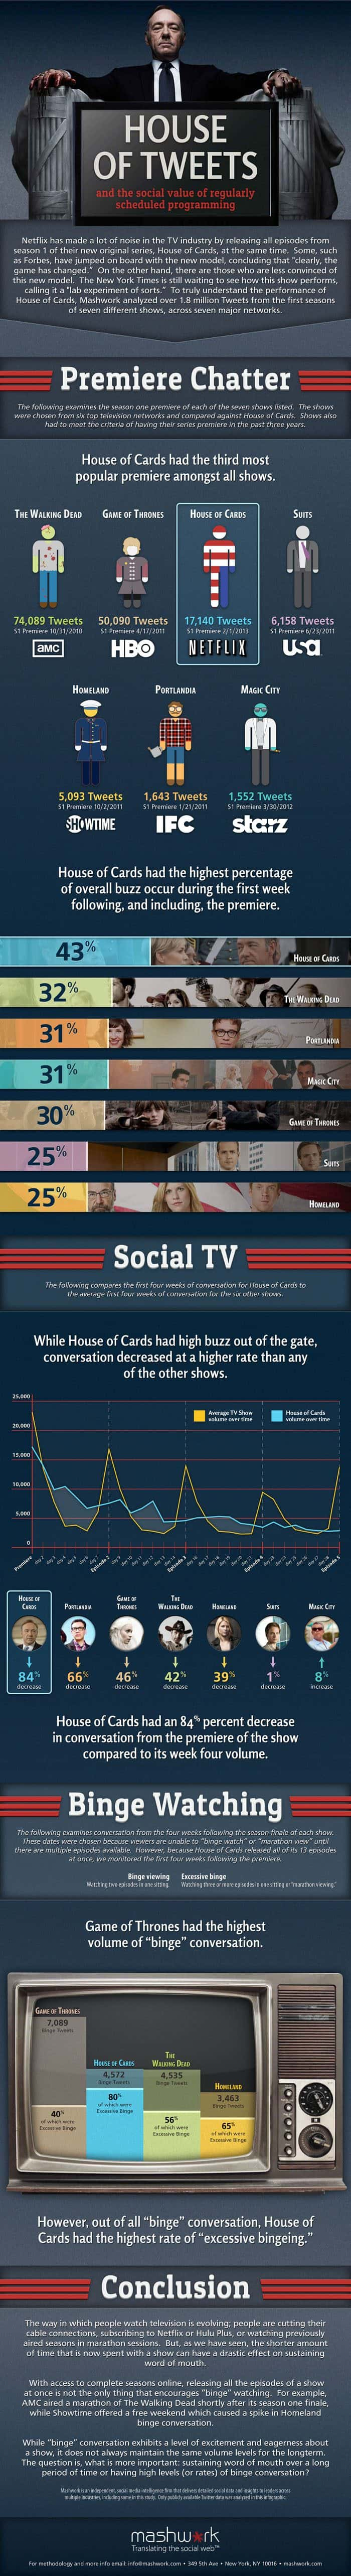 Netflix House of Tweets Infographic